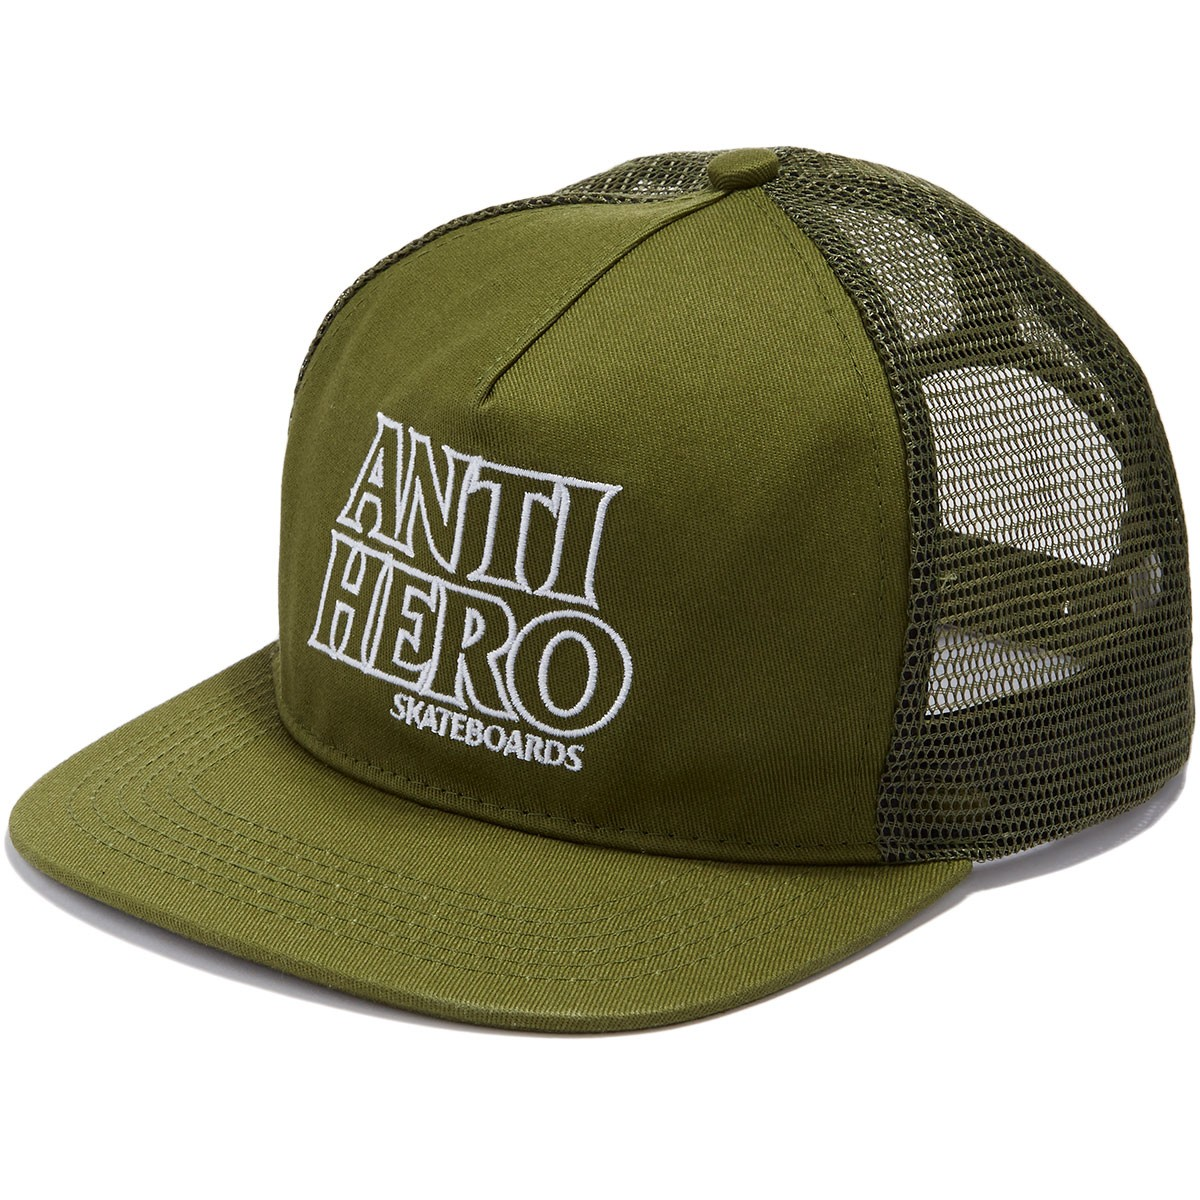 bfde5ff7 Anti-Hero Outline Hero Trucker Hat